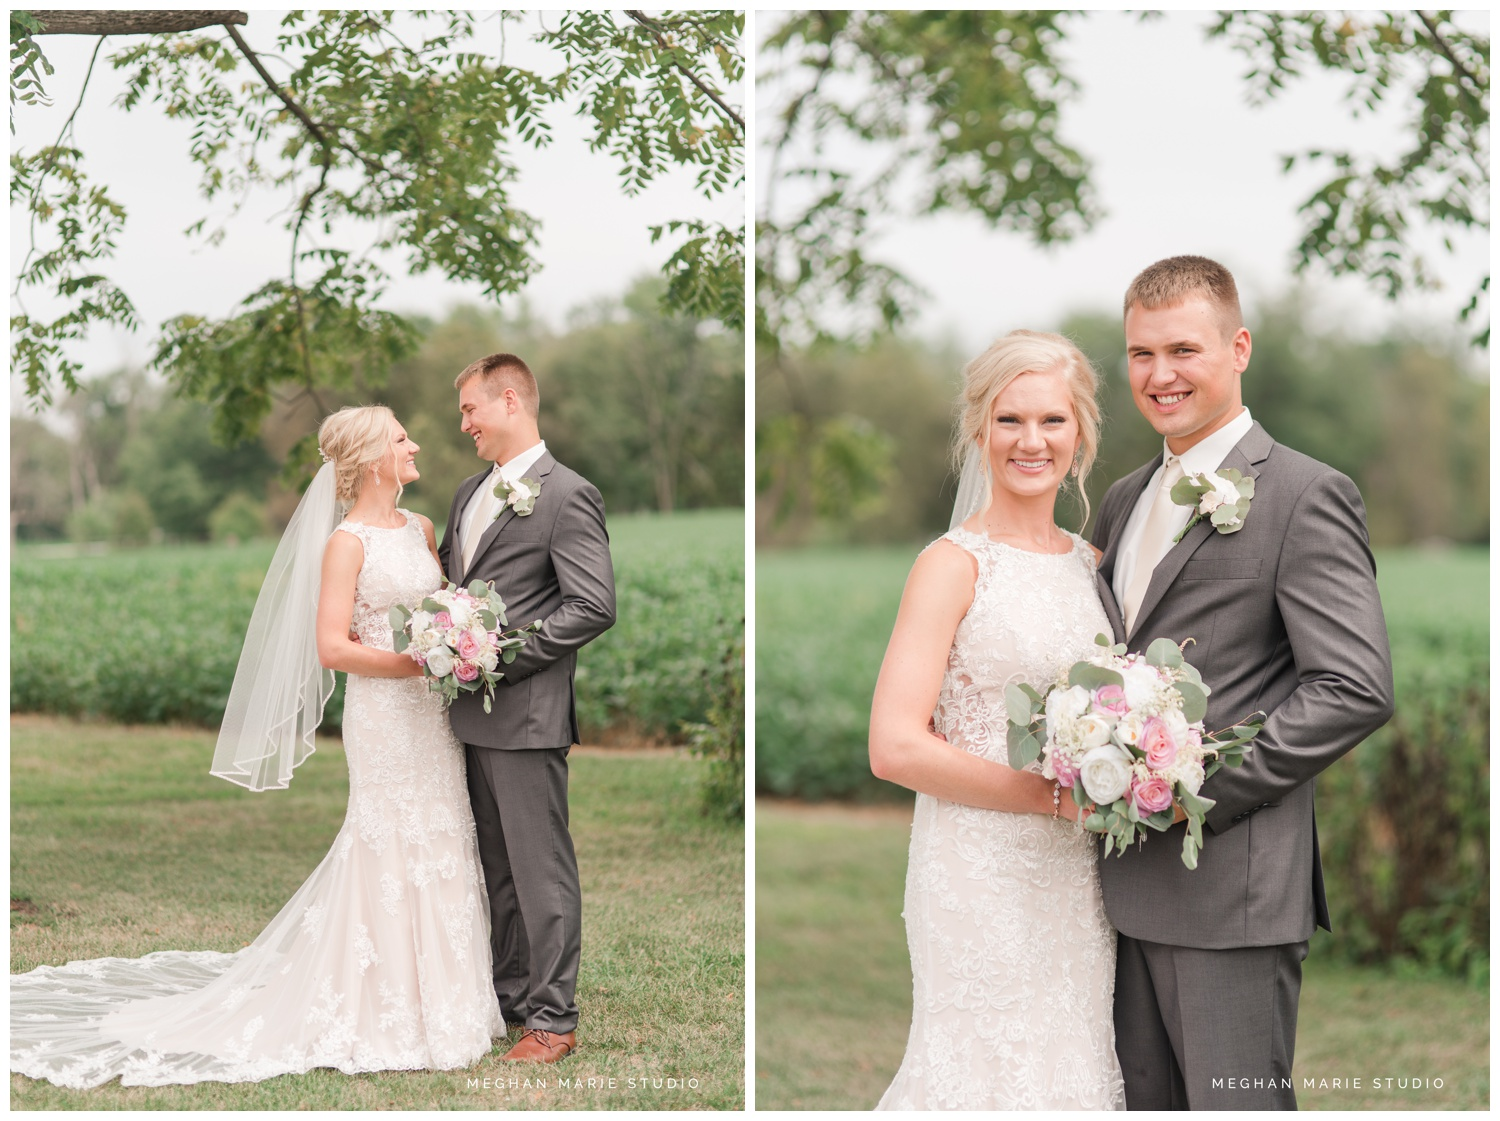 meghan marie studio wedding photographer ohio troy dayton columbus small town rustic rural farm cows vintage mauves dusty rose pinks whites ivorys grays f1 sound paper lanterns pearls_0629.jpg